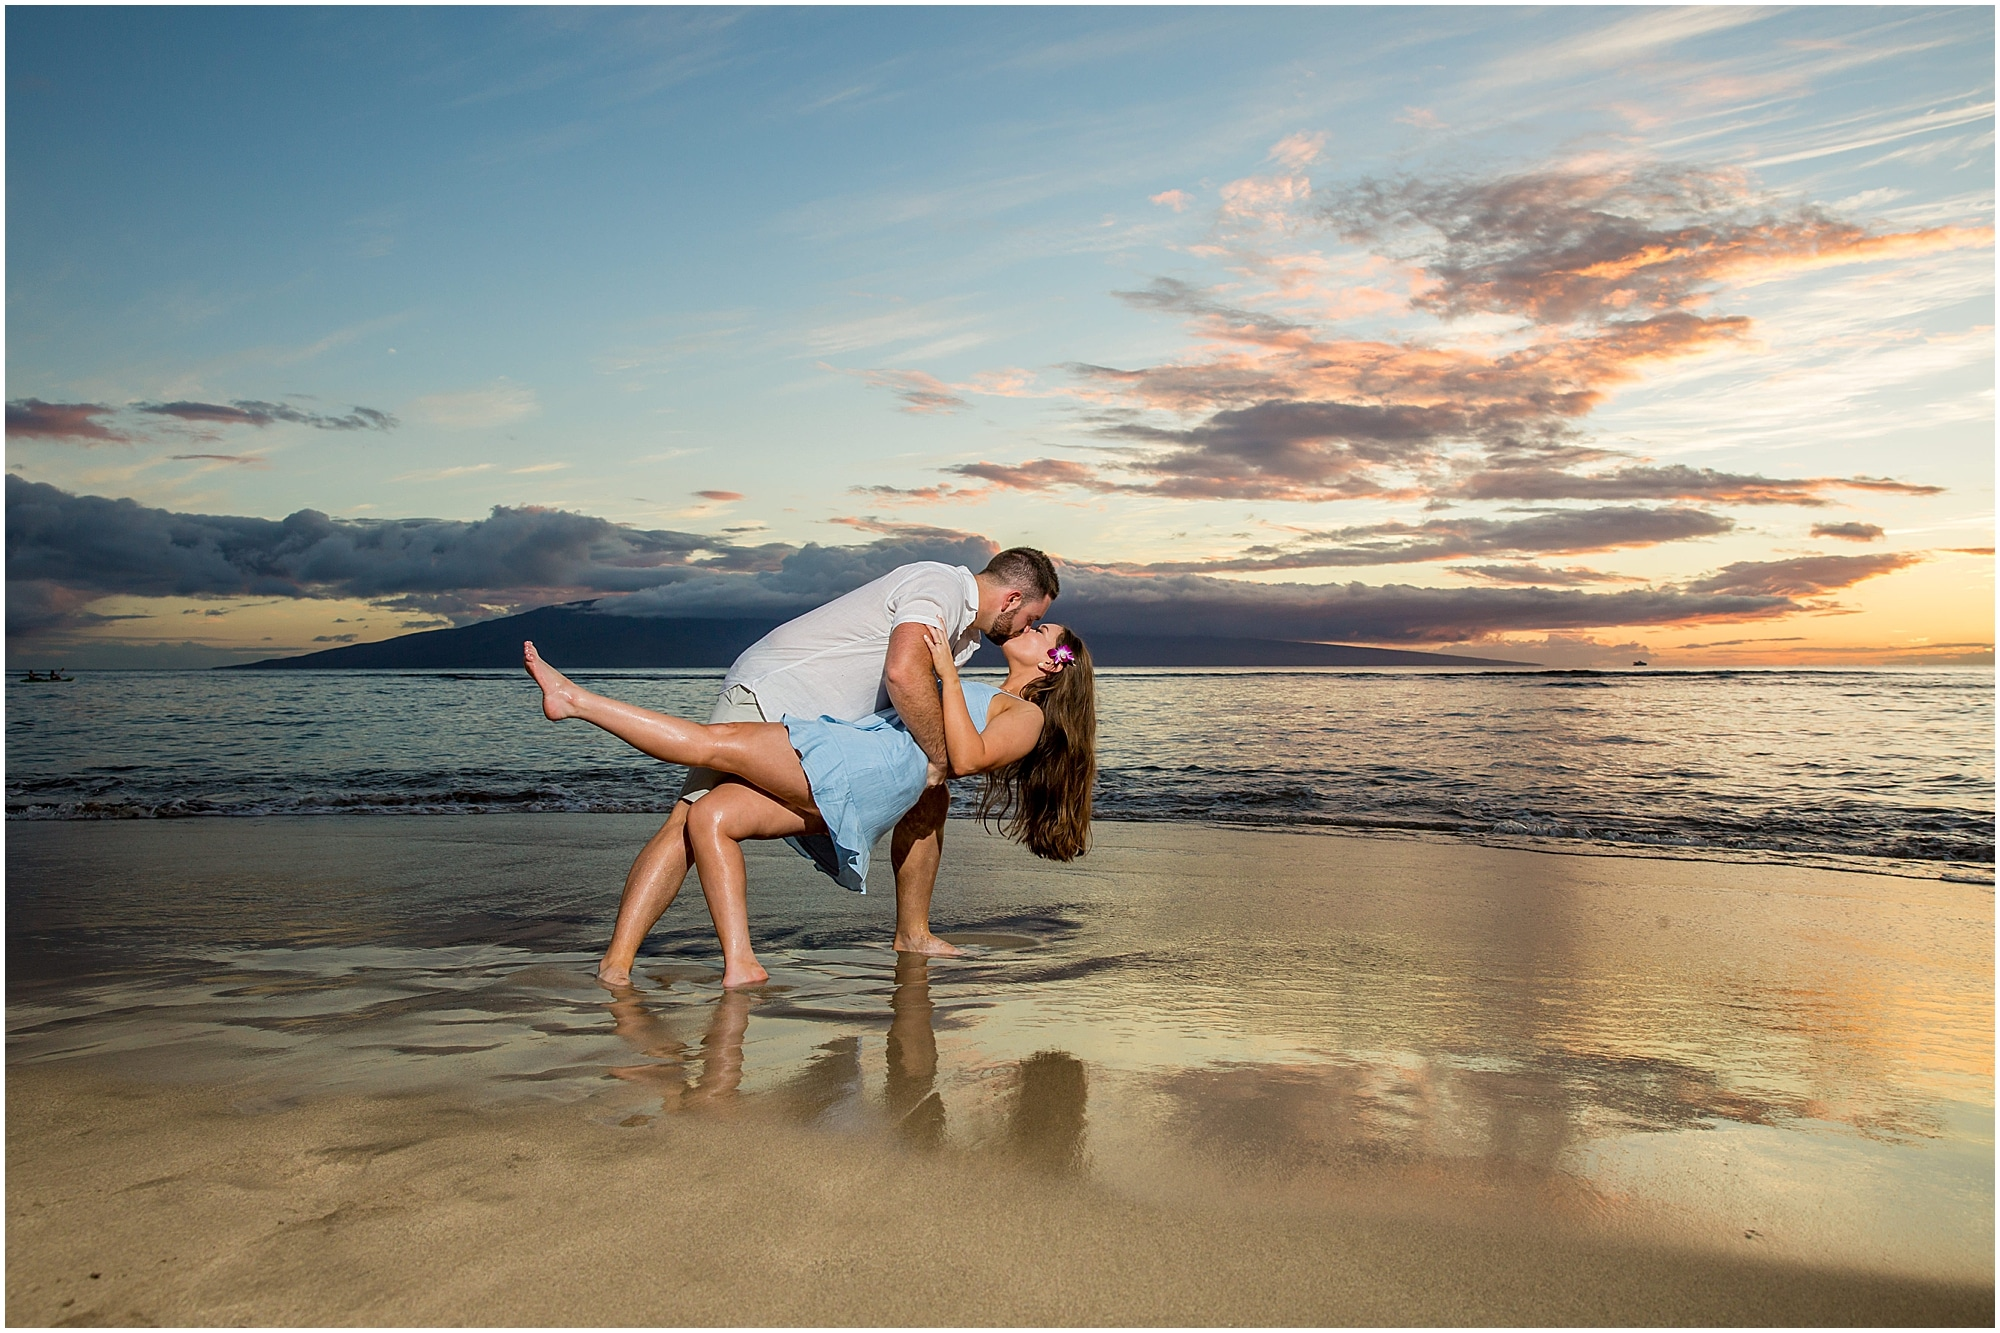 Dip and kiss on the shores of Maui